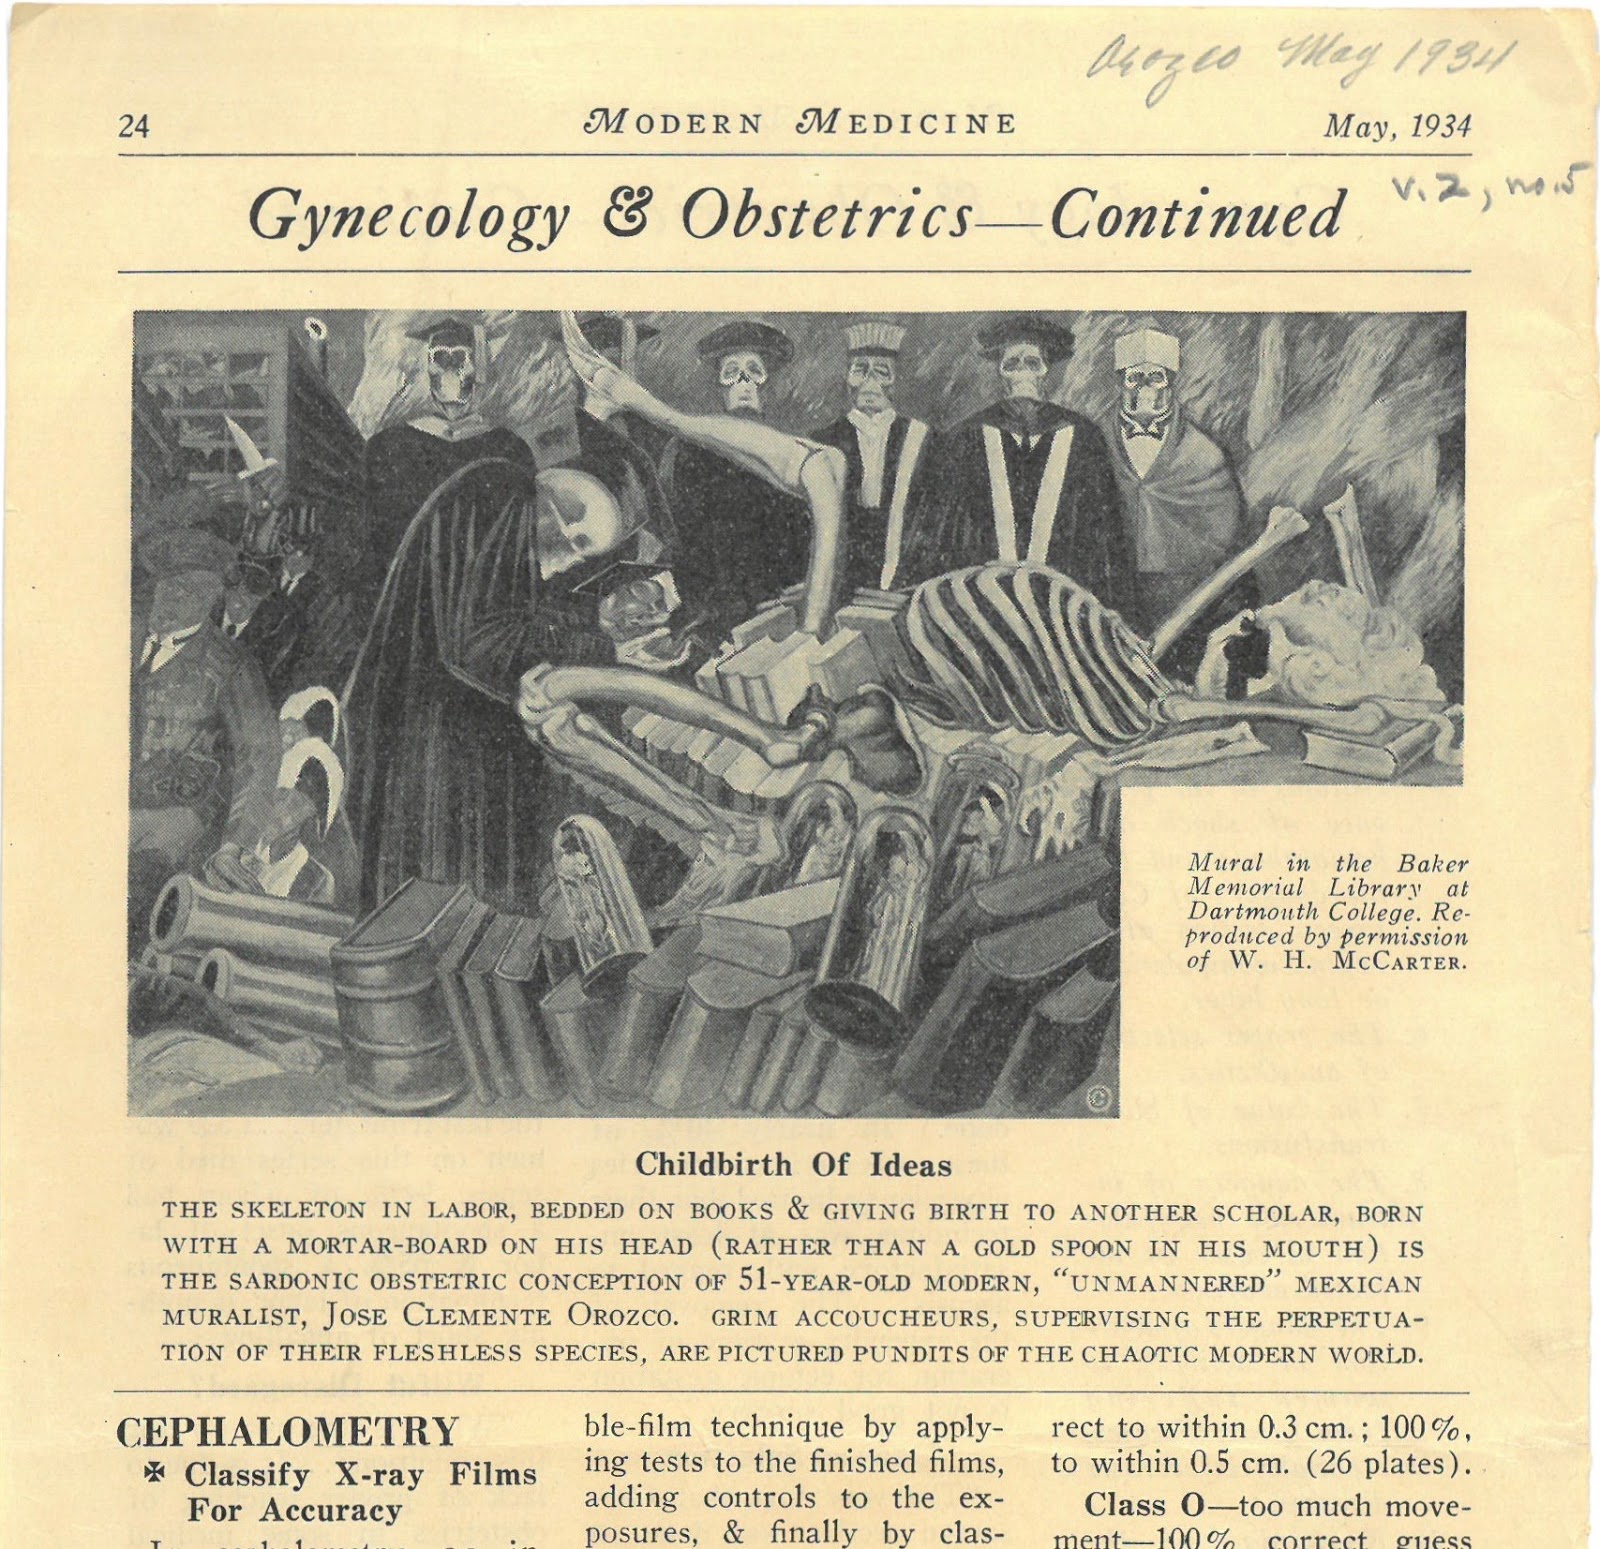 Rauner Special Collections Library: An Obstetric View of Orozco